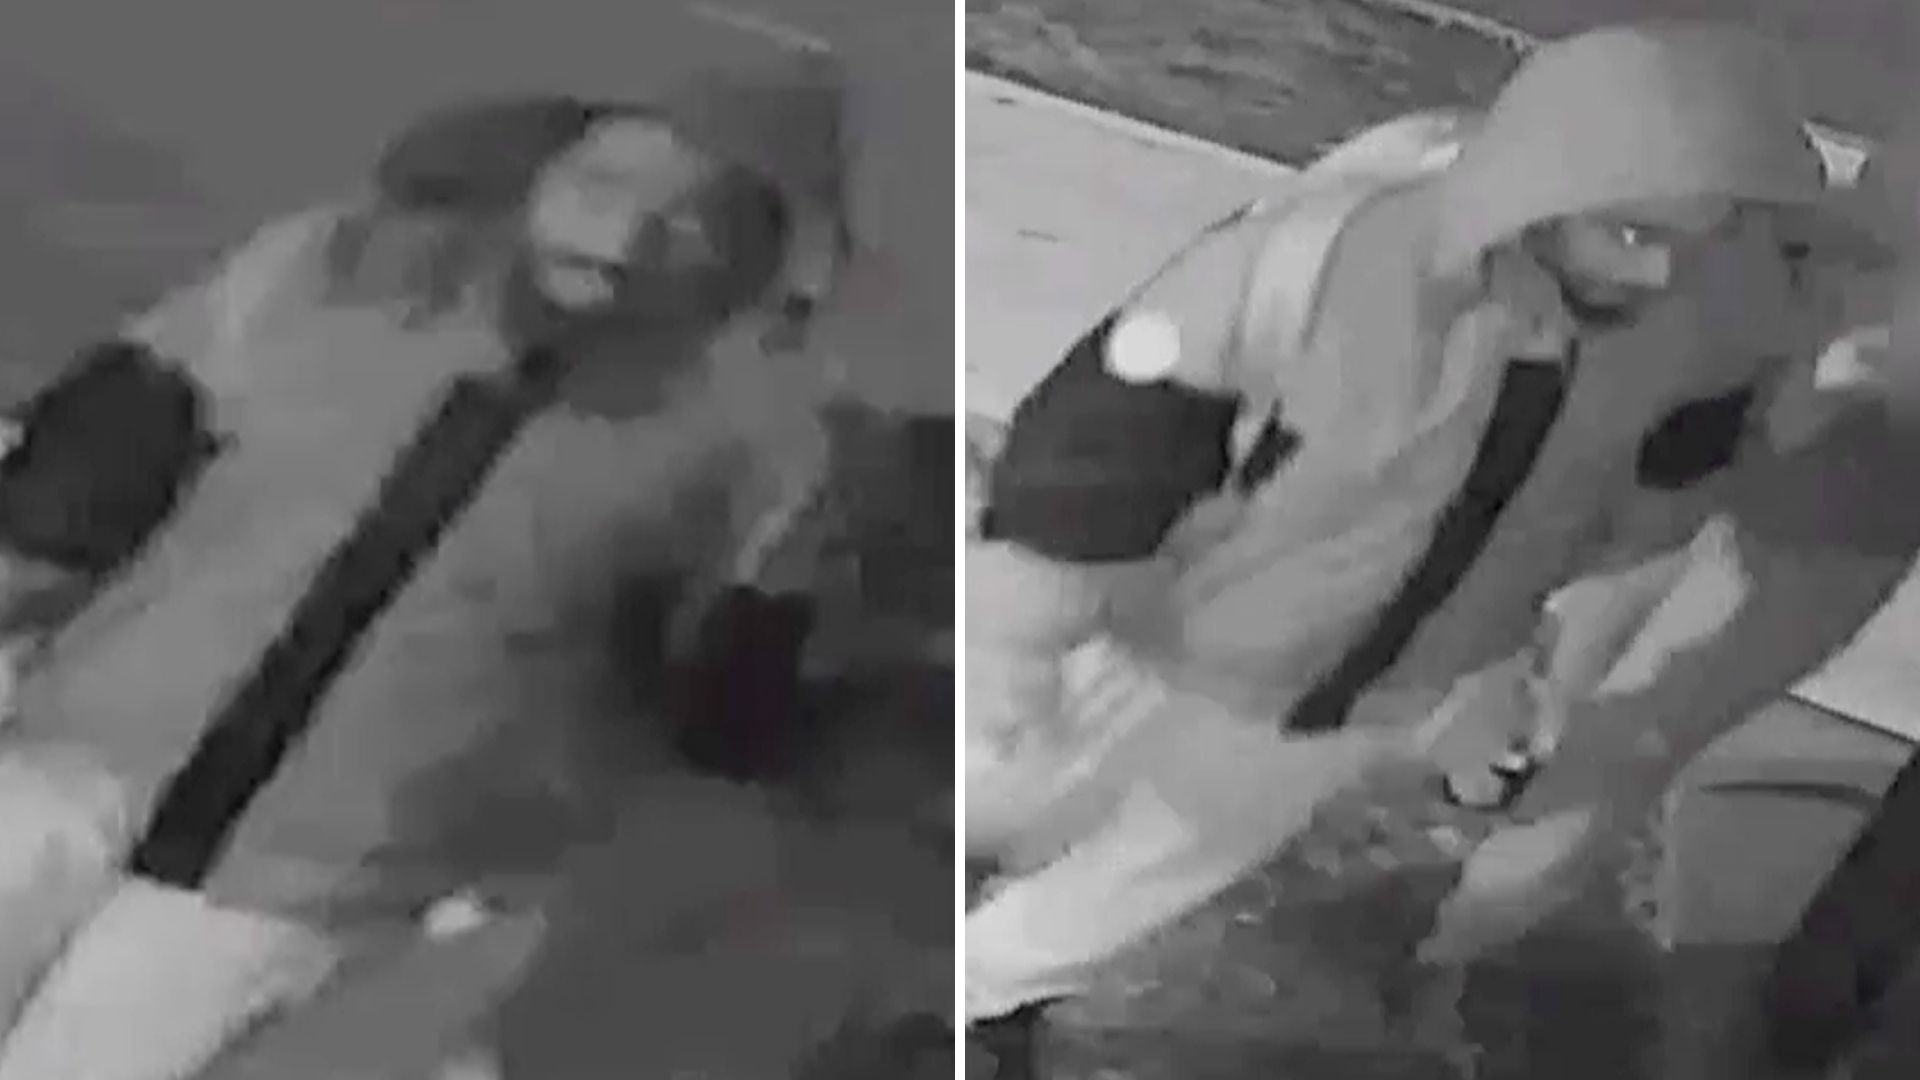 Man sought in rape of 15-year-old girl at gunpoint in Queens